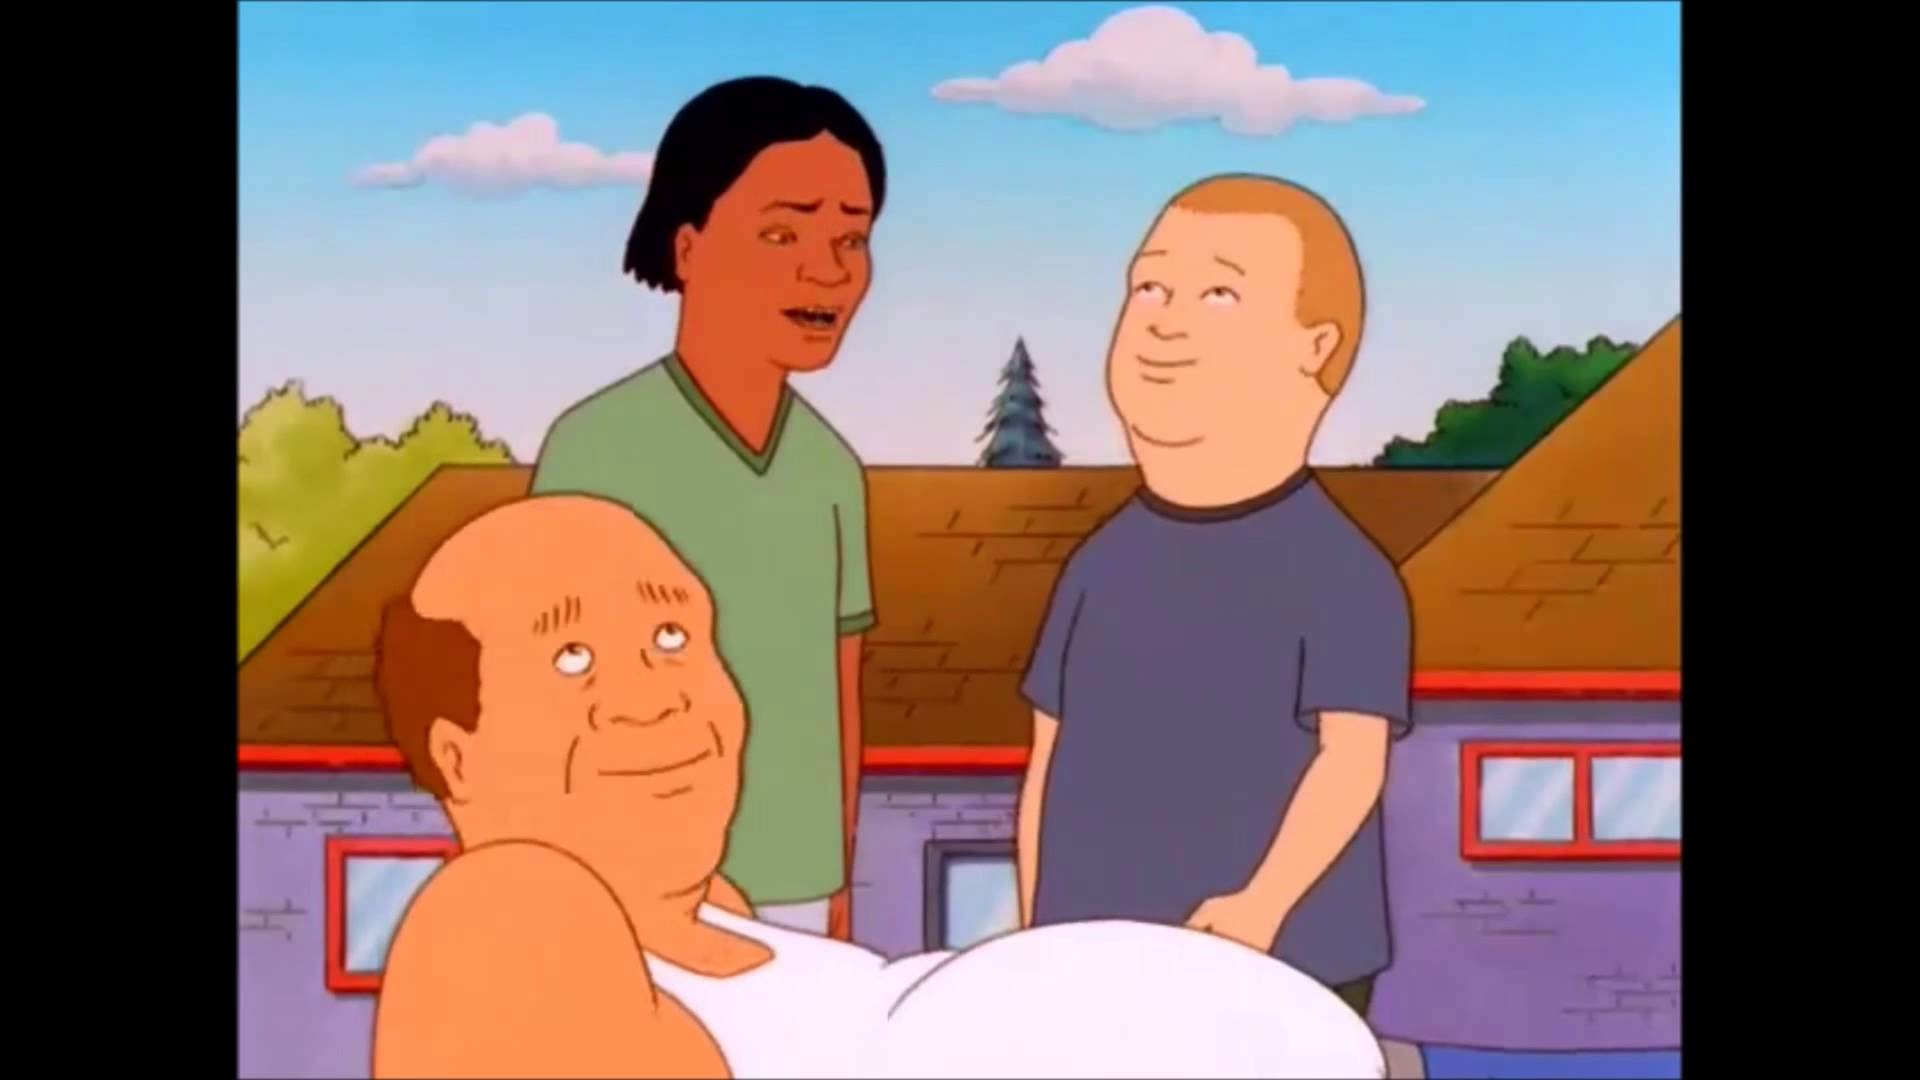 … most viewed king of the hill wallpapers 4k wallpapers …